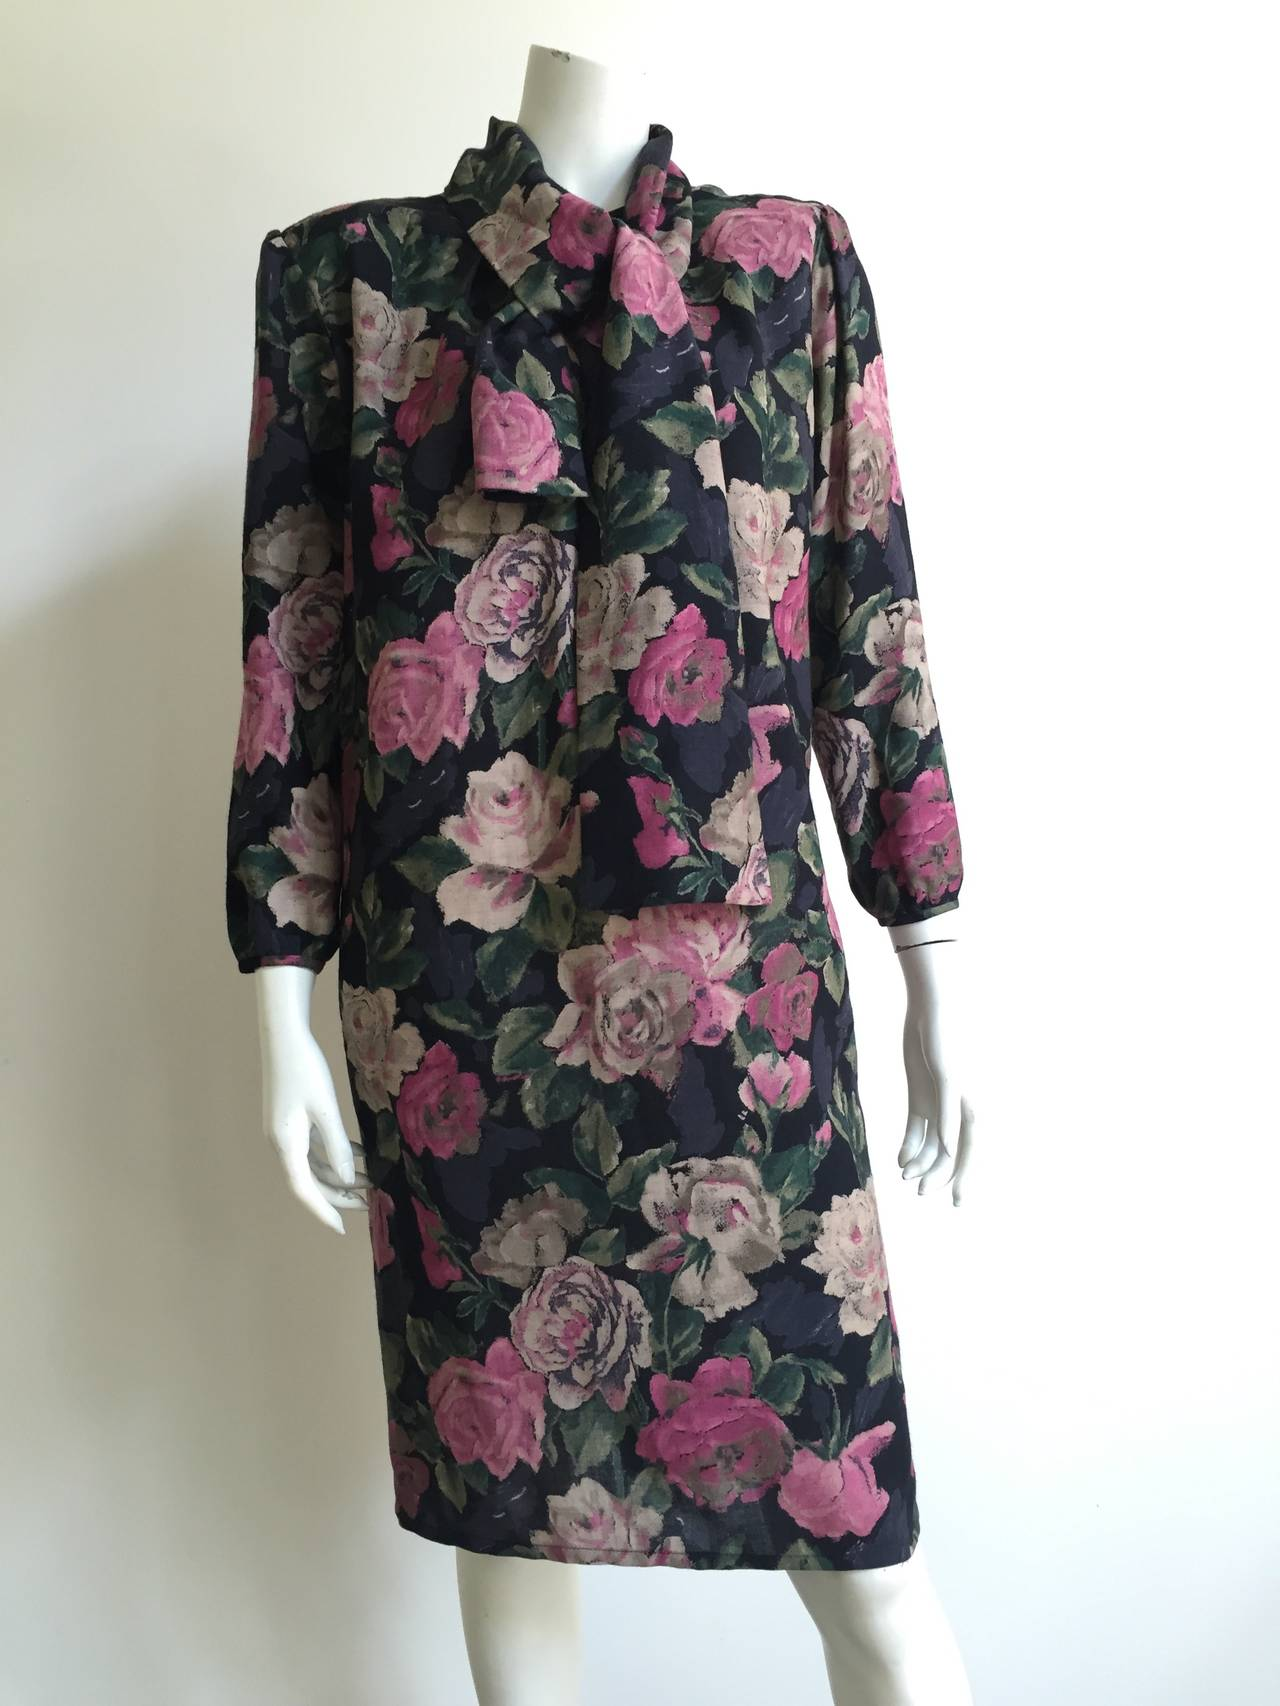 Ungaro ter 1980s floral dress size 10 / 44 with pockets & tie scarf.